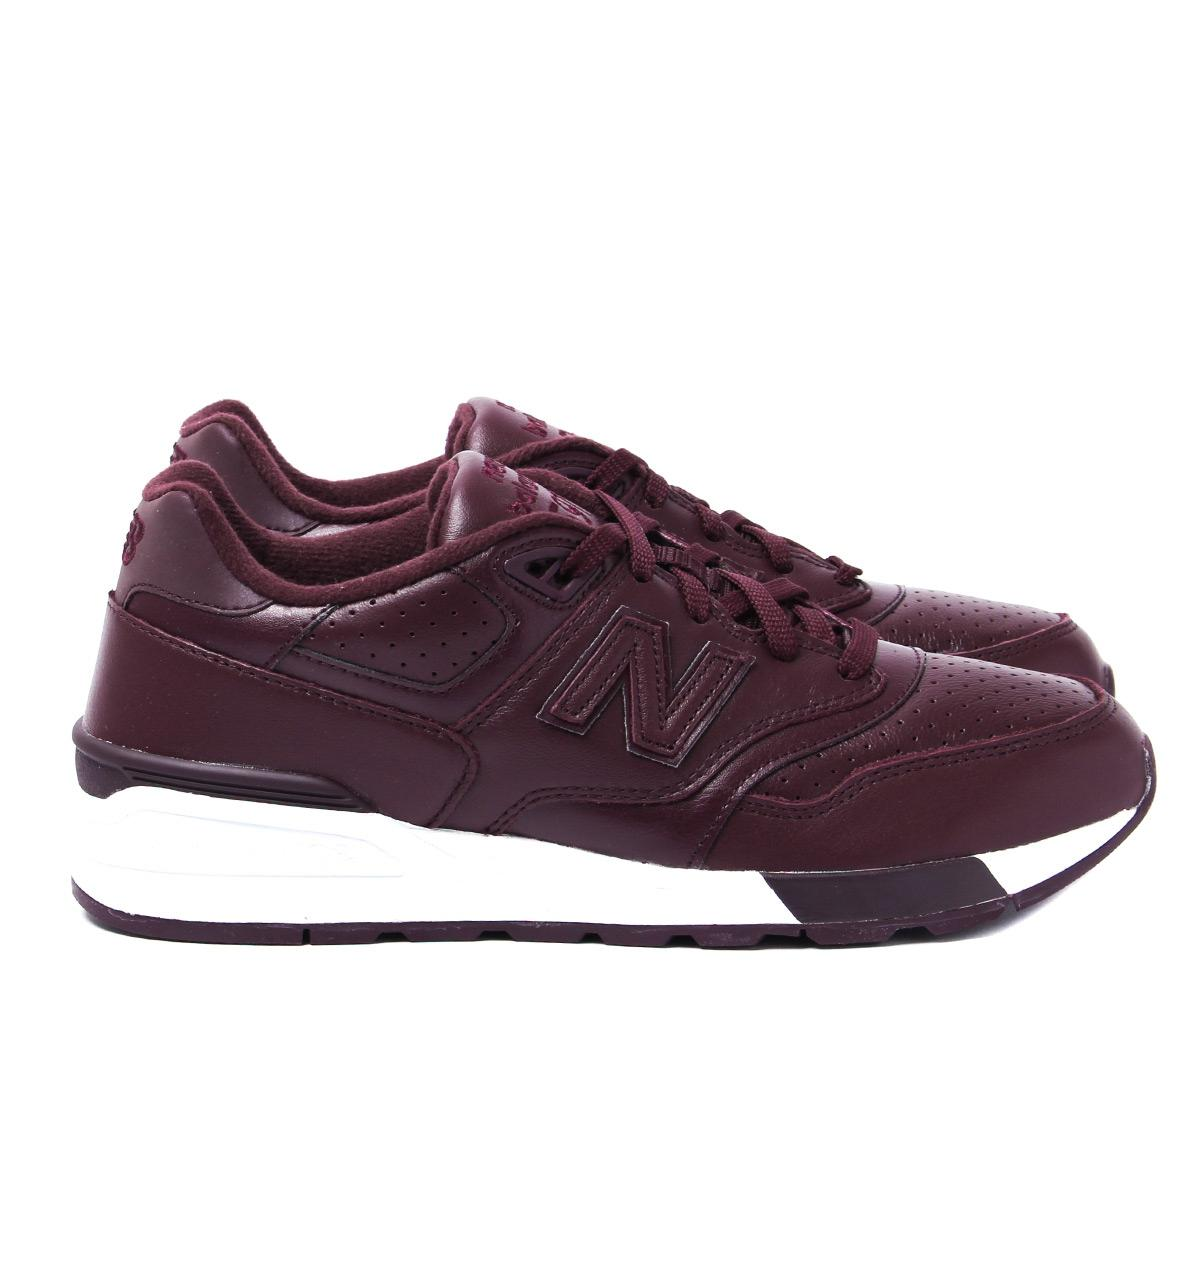 c1ed62b582c Lyst - New Balance 597 Deep Purple Leather Trainers in Purple for Men